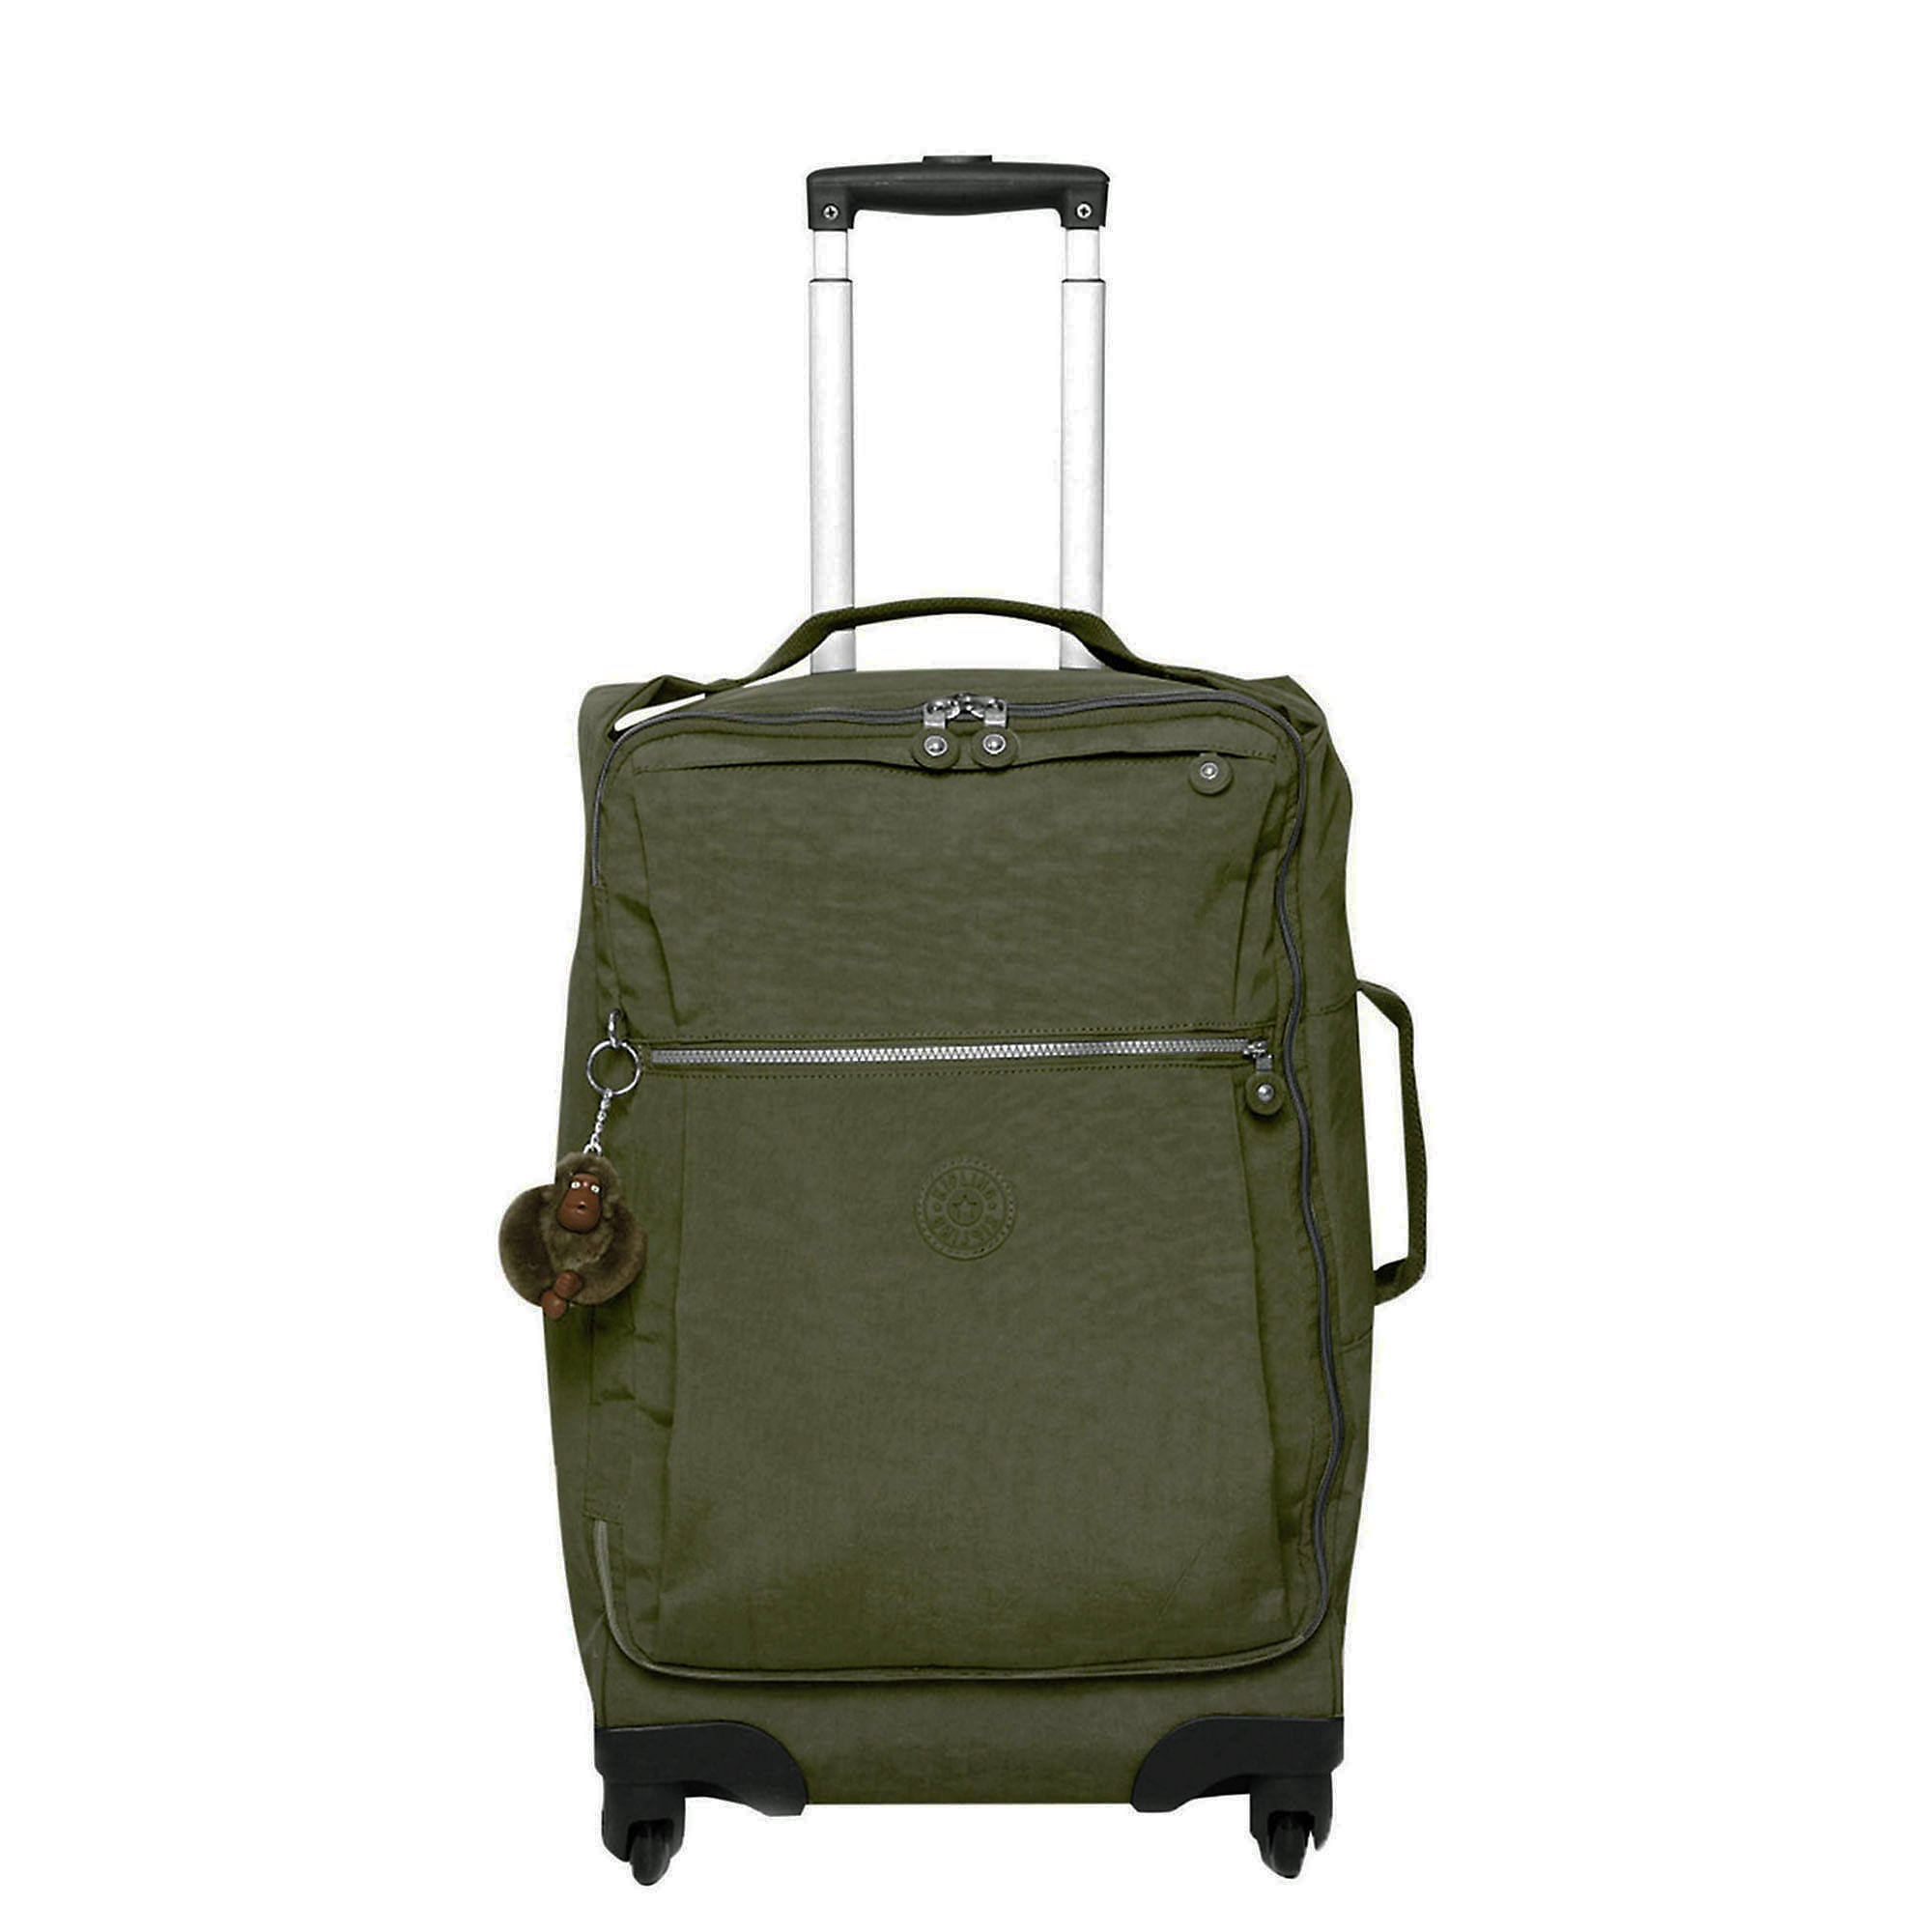 fa52bdfd6e Darcey Small Carry-On Rolling Luggage,Jaded Green,large